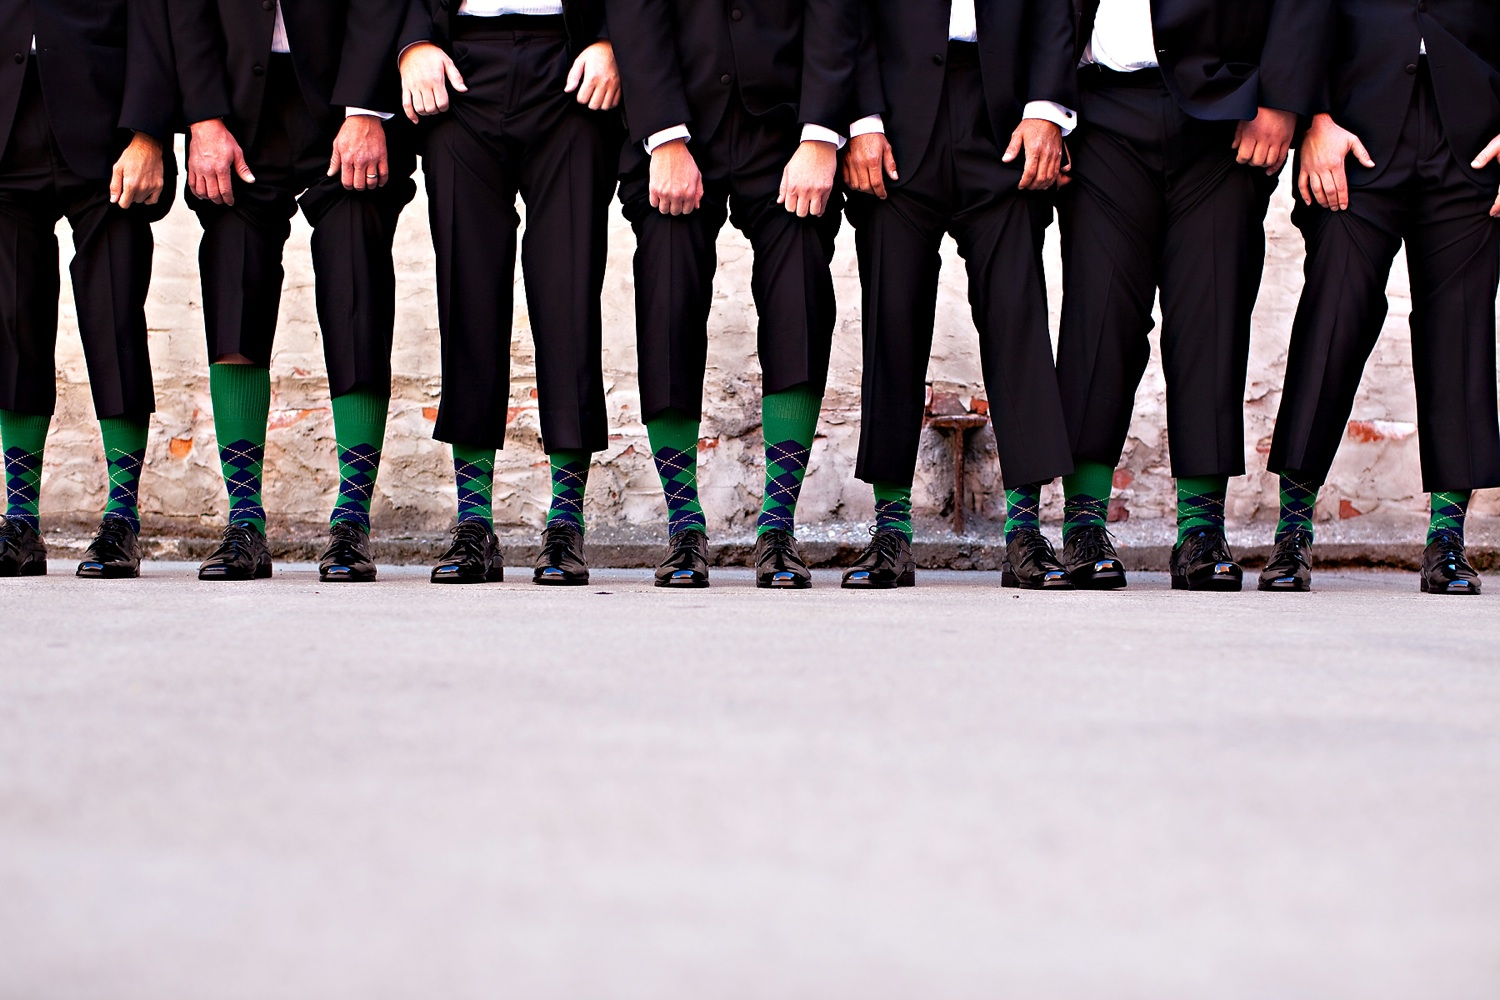 Groom-poses-with-groomsment-in-black-tuxedos.original